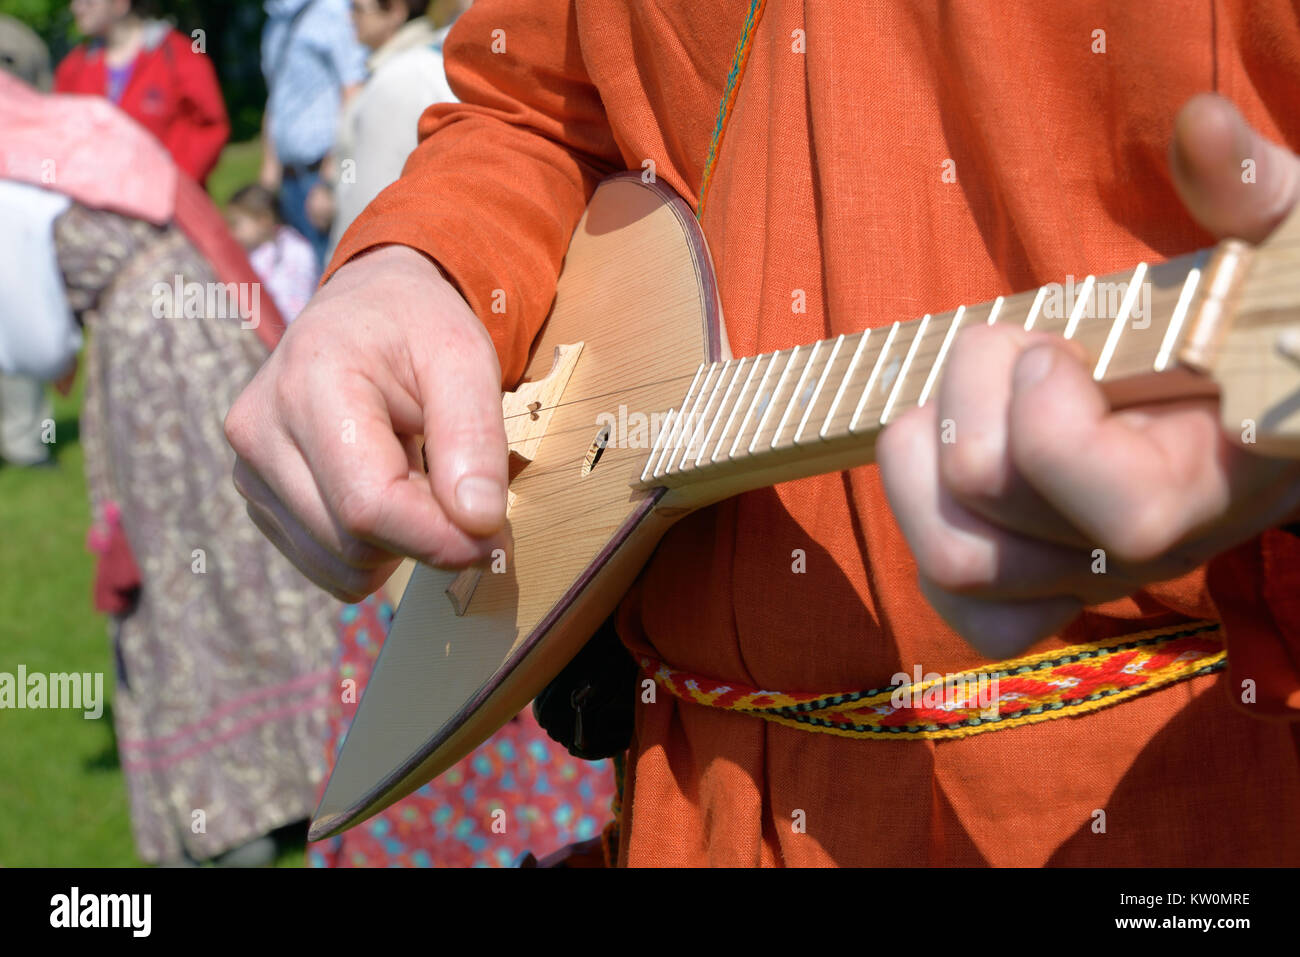 Balalaika in hands of the man dressed in a national Russian suit, close up - Stock Image